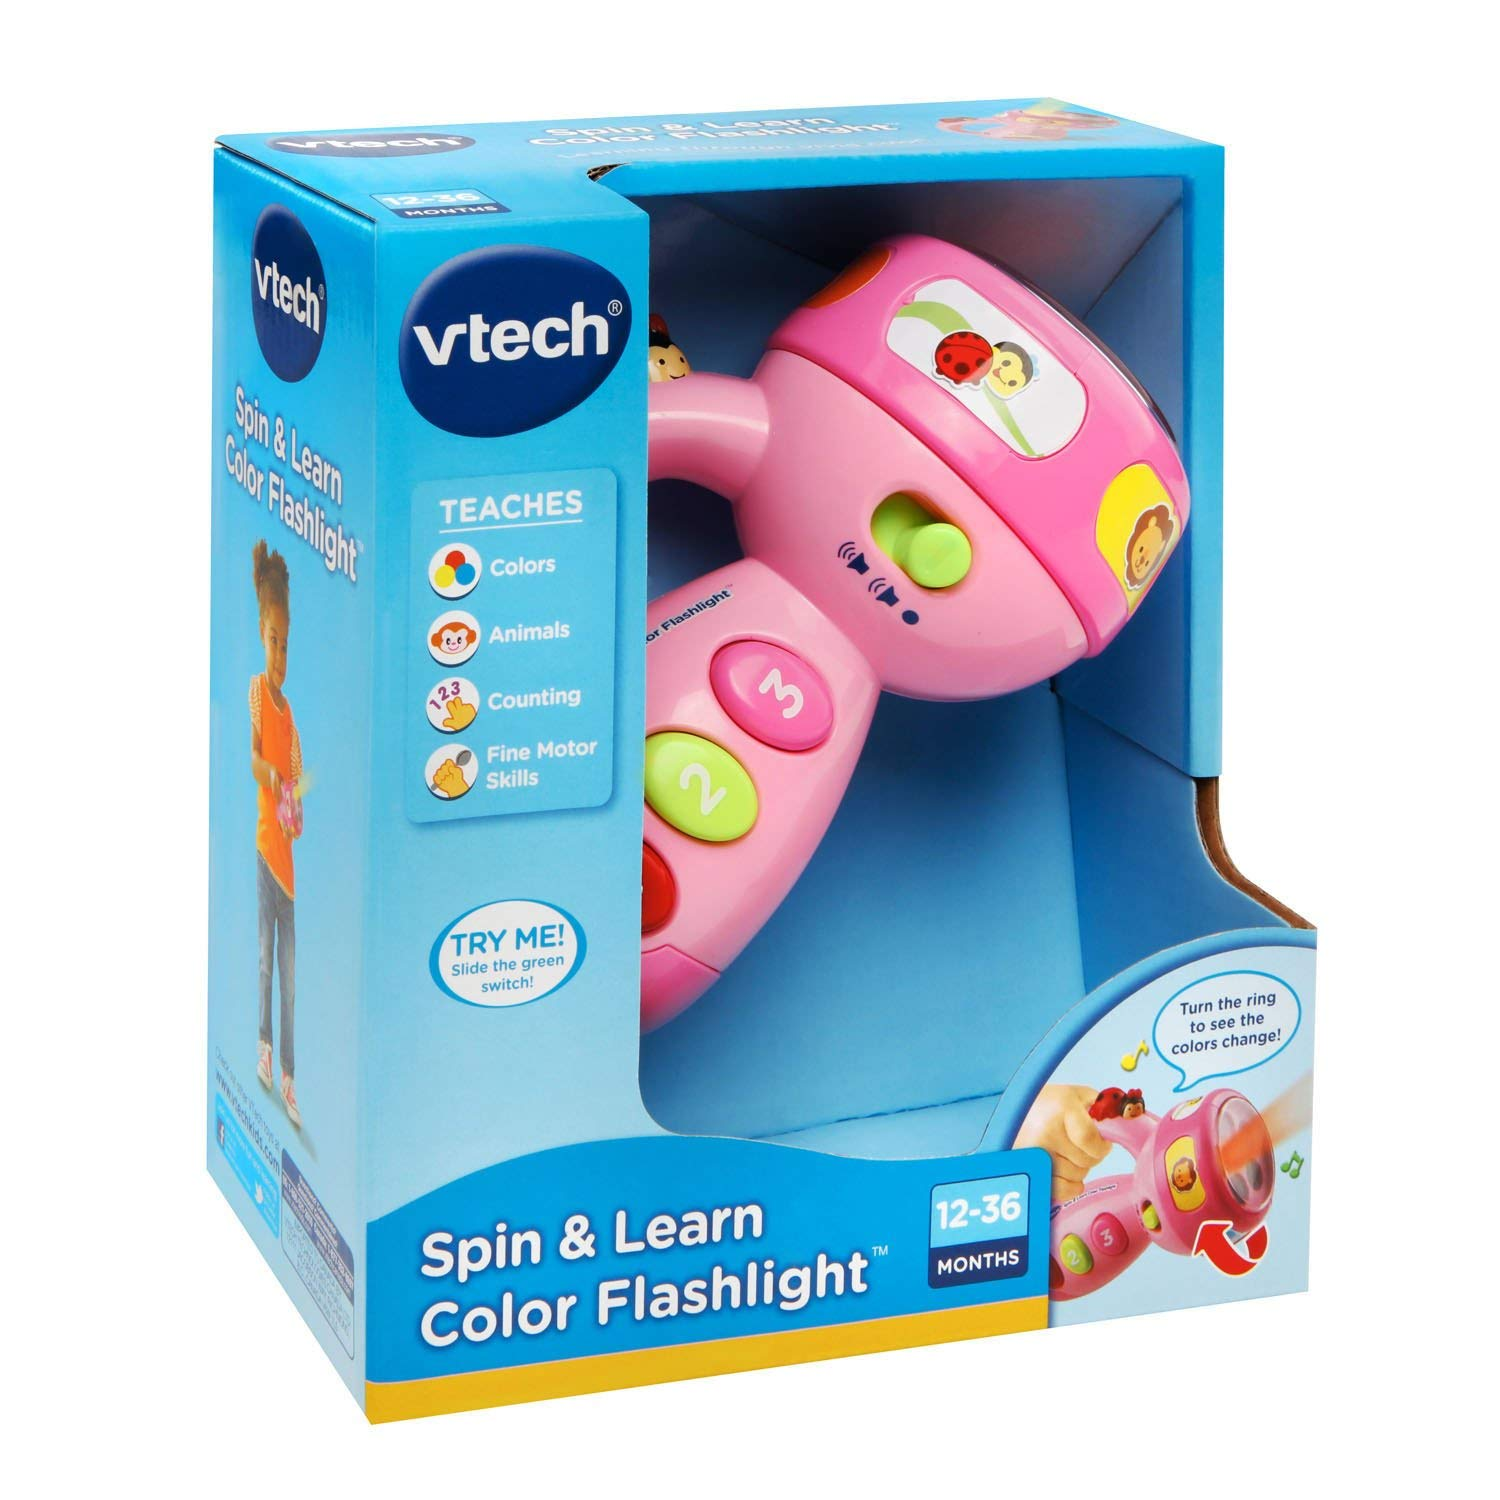 VTech Spin and Learn Color Flashlight, exciting songs and music that teach about animals, colors and numbers, Pink New!